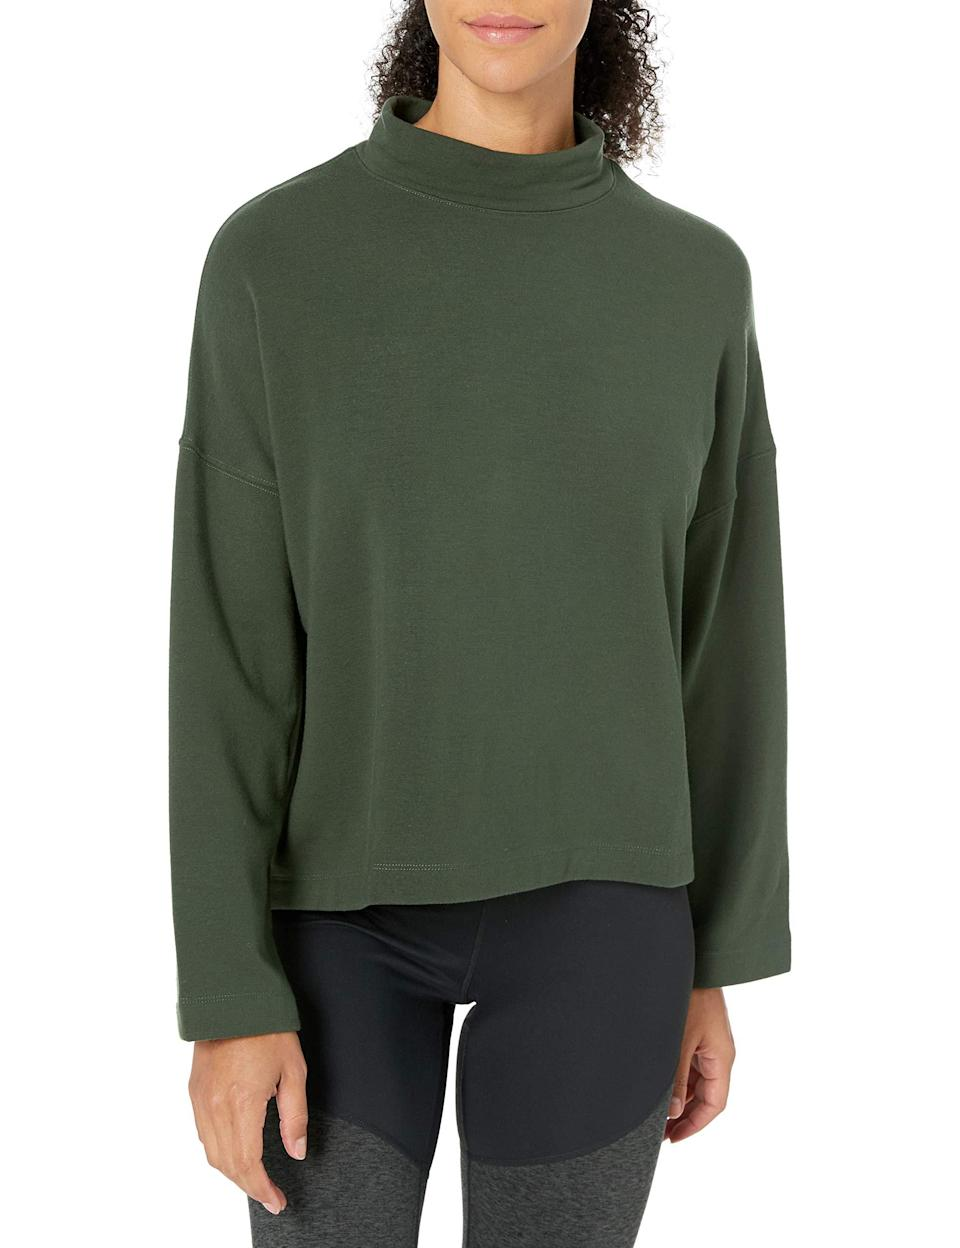 "https://amzn.to/2Fm9CDW<br><br><strong>Core 10</strong> Cloud Soft Yoga Fleece Mock Dolman Sweatshirt, $, available at <a href=""https://amzn.to/2Fm9CDW"" rel=""nofollow noopener"" target=""_blank"" data-ylk=""slk:Amazon"" class=""link rapid-noclick-resp"">Amazon</a>"